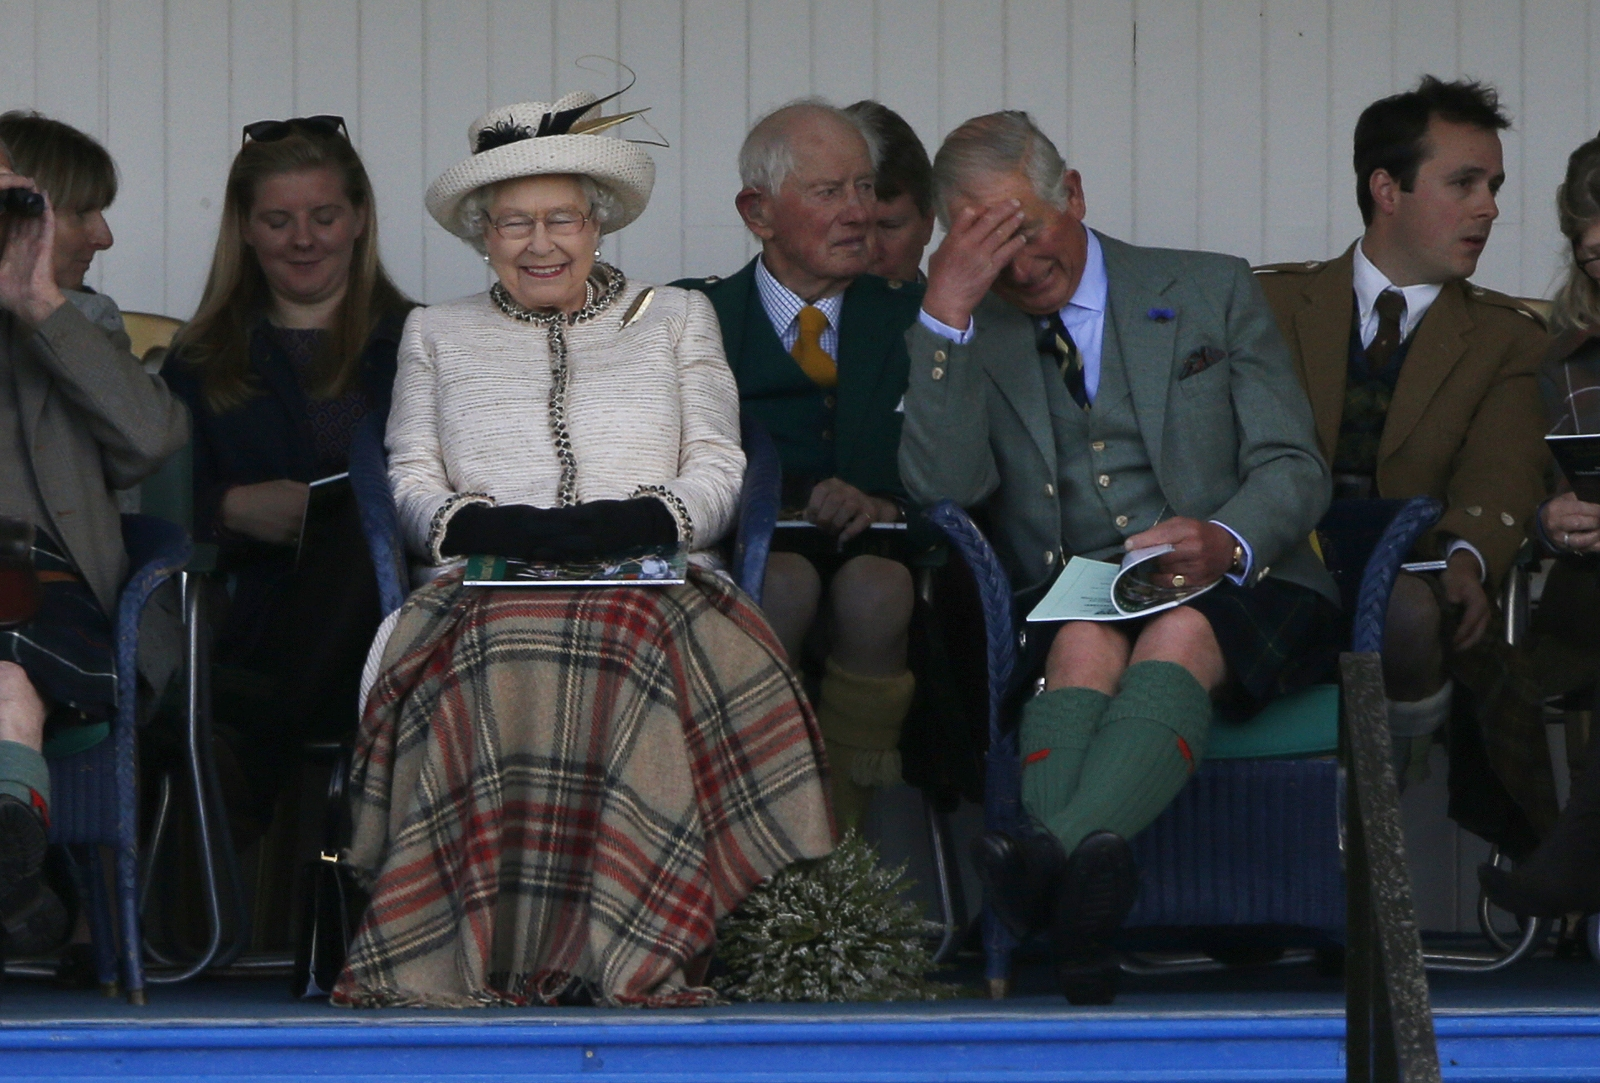 Queen Elizabeth and Scottish independence referendum